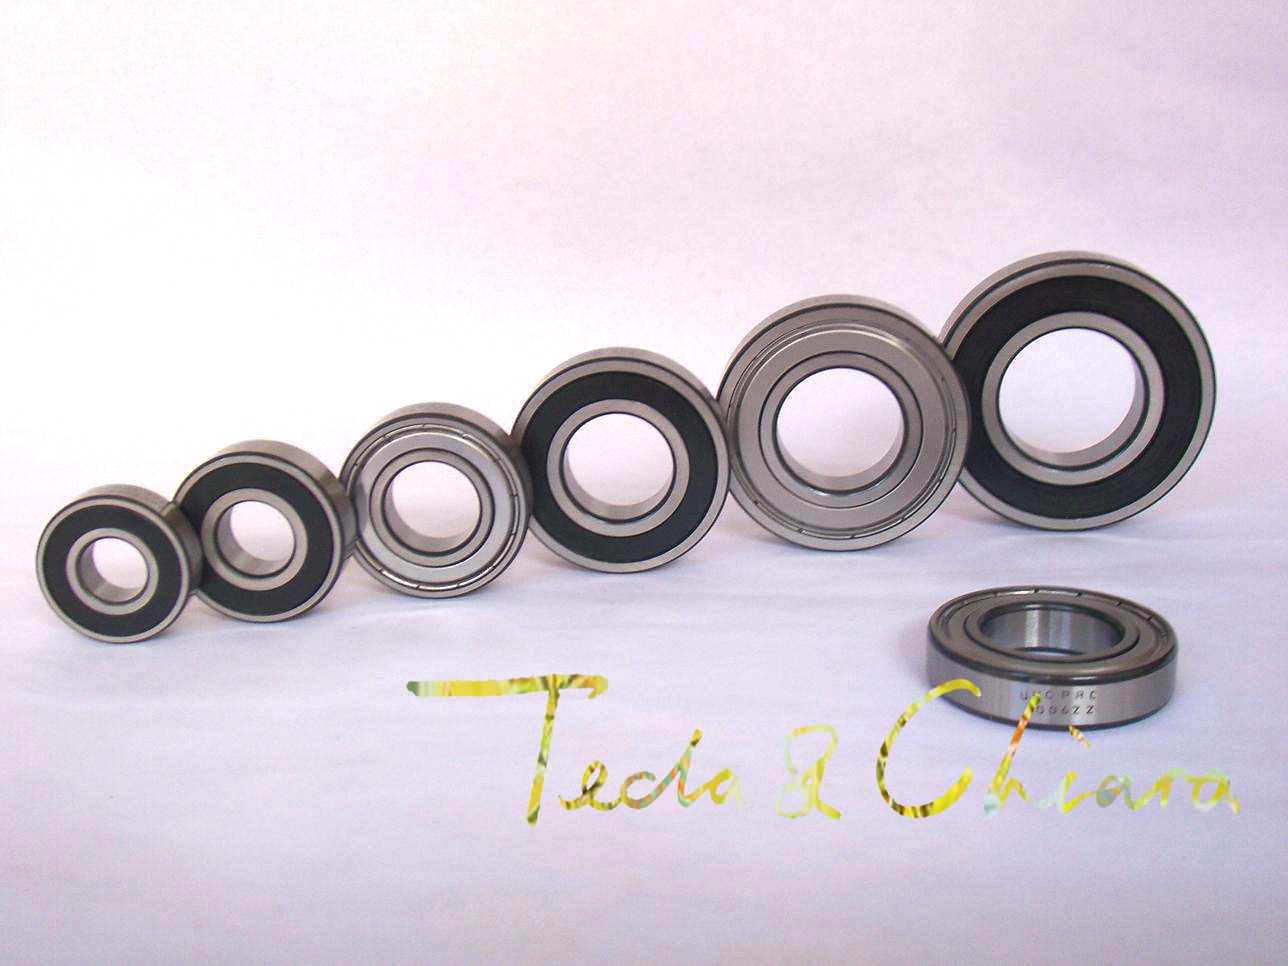 6202 6202ZZ 6202RS 6202-2Z 6202Z 6202-2RS ZZ RS RZ 2RZ Deep Groove Ball Bearings 15 x 35 x 11mm High Quality 6902 6902zz 6902rs 6902 2z 6902z 6902 2rs zz rs rz 2rz deep groove ball bearings 15 x 28 x 7mm high quality